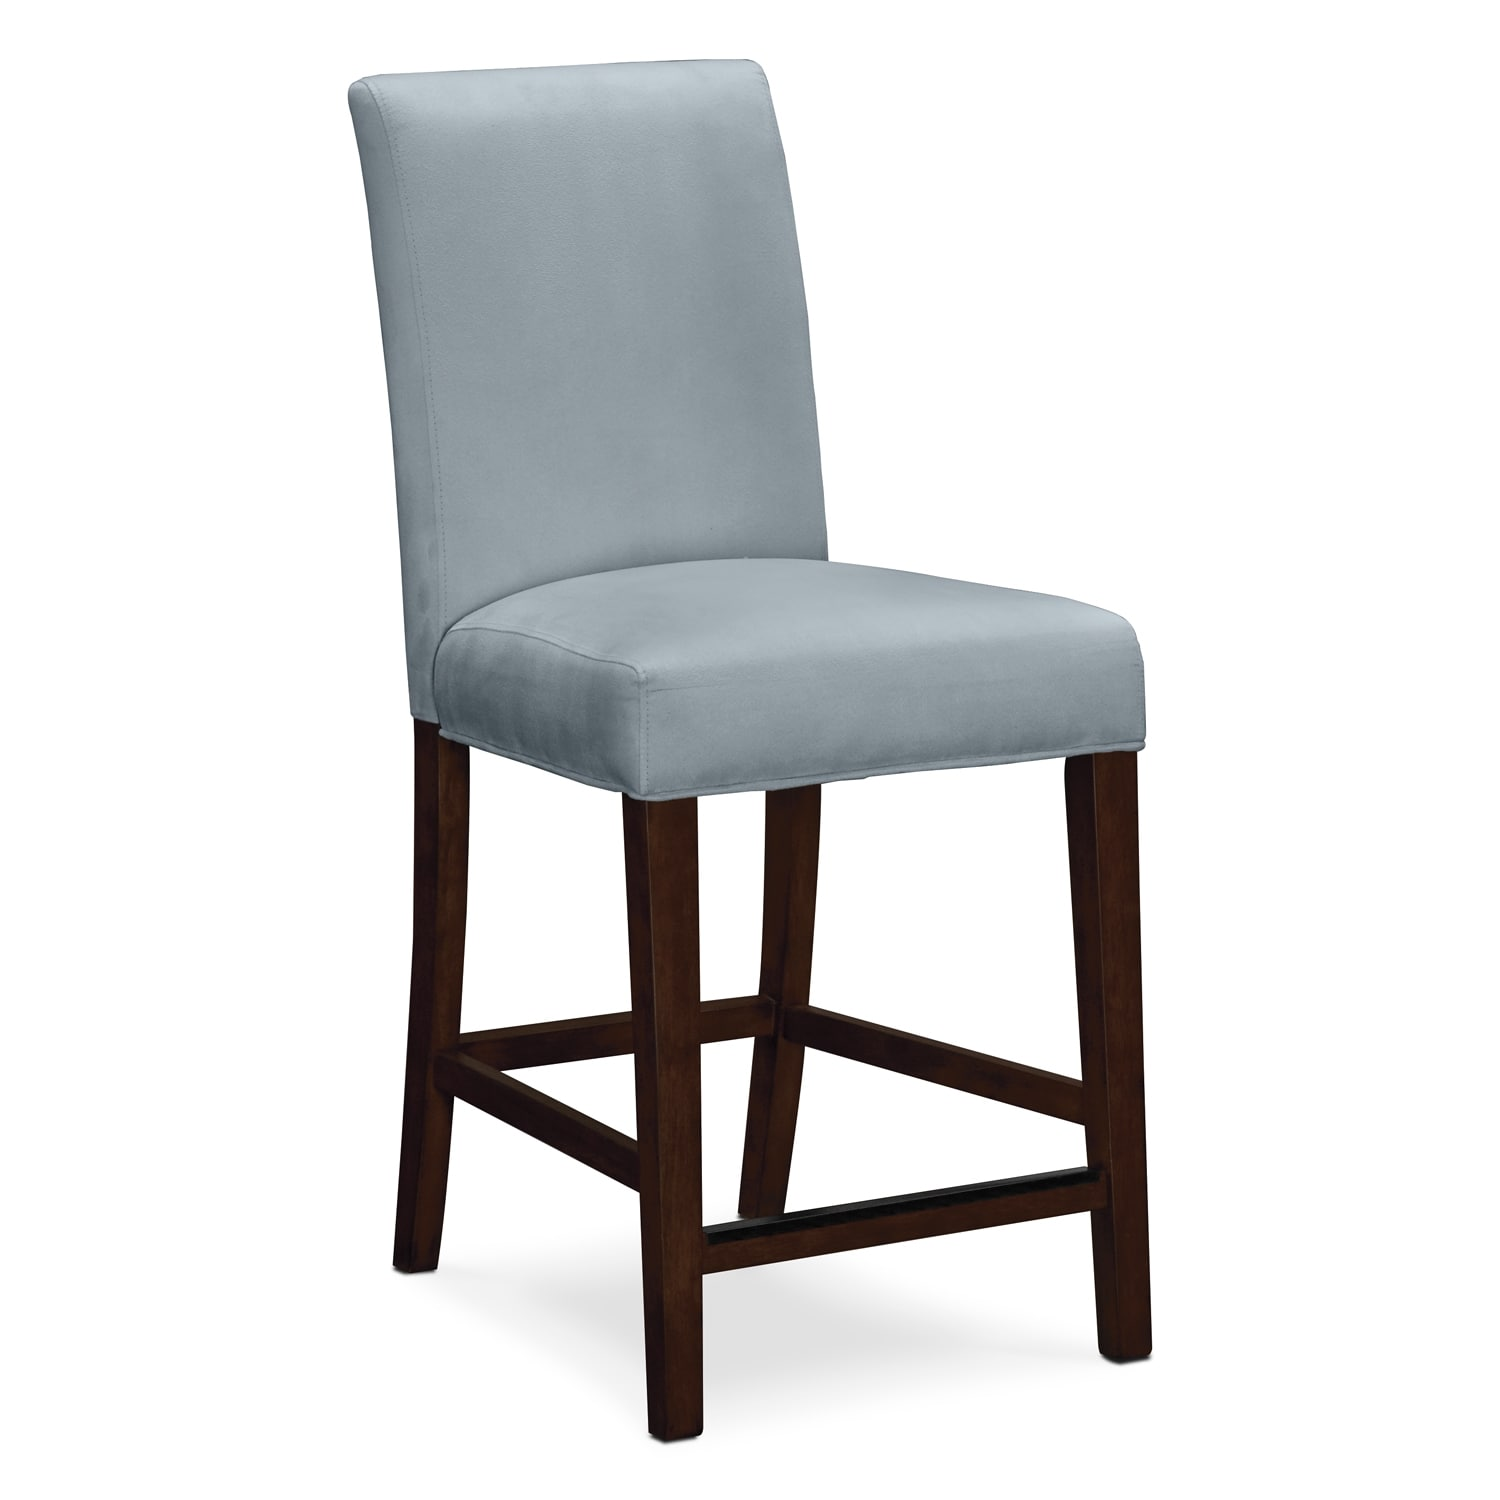 Counter Height Stools Chairs Guide To Choosing The Right